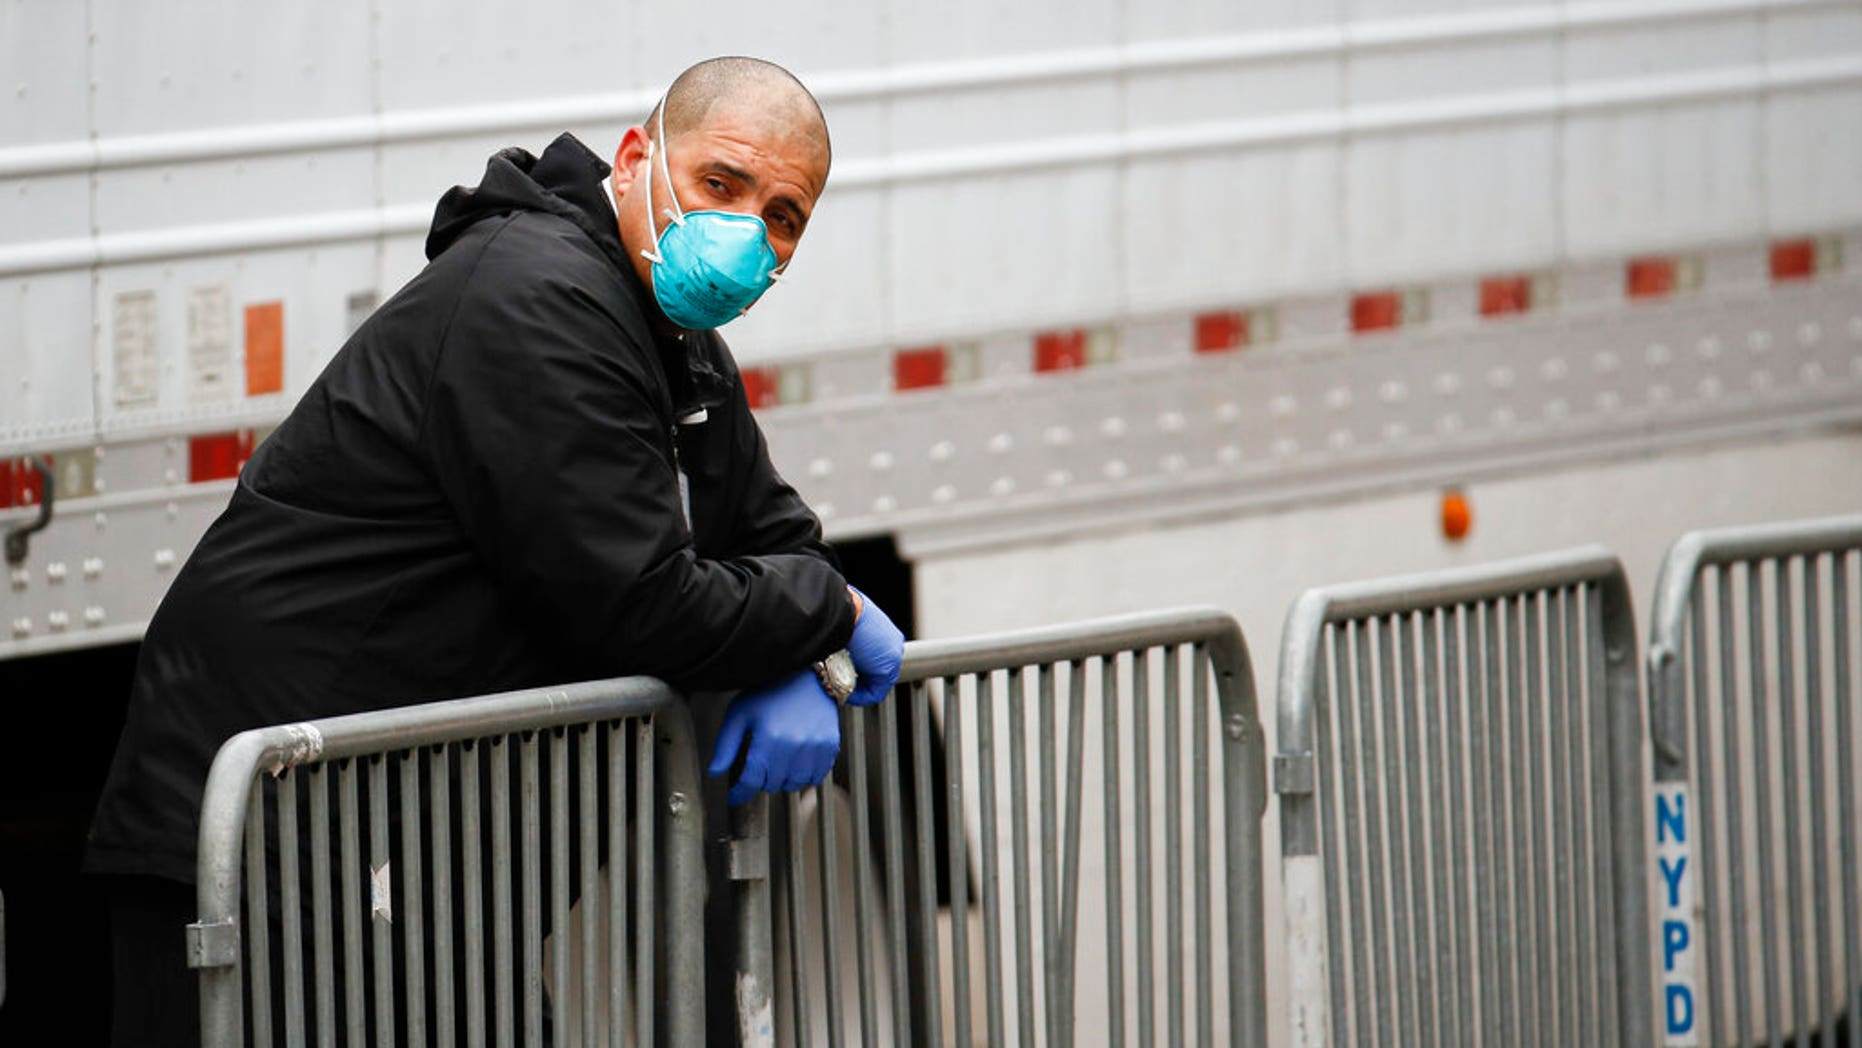 A medical worker wearing personal protective equipment due to COVID-19 concerns rests beside a refrigerated container truck functioning as a makeshift morgue. (AP Photo/John Minchillo)